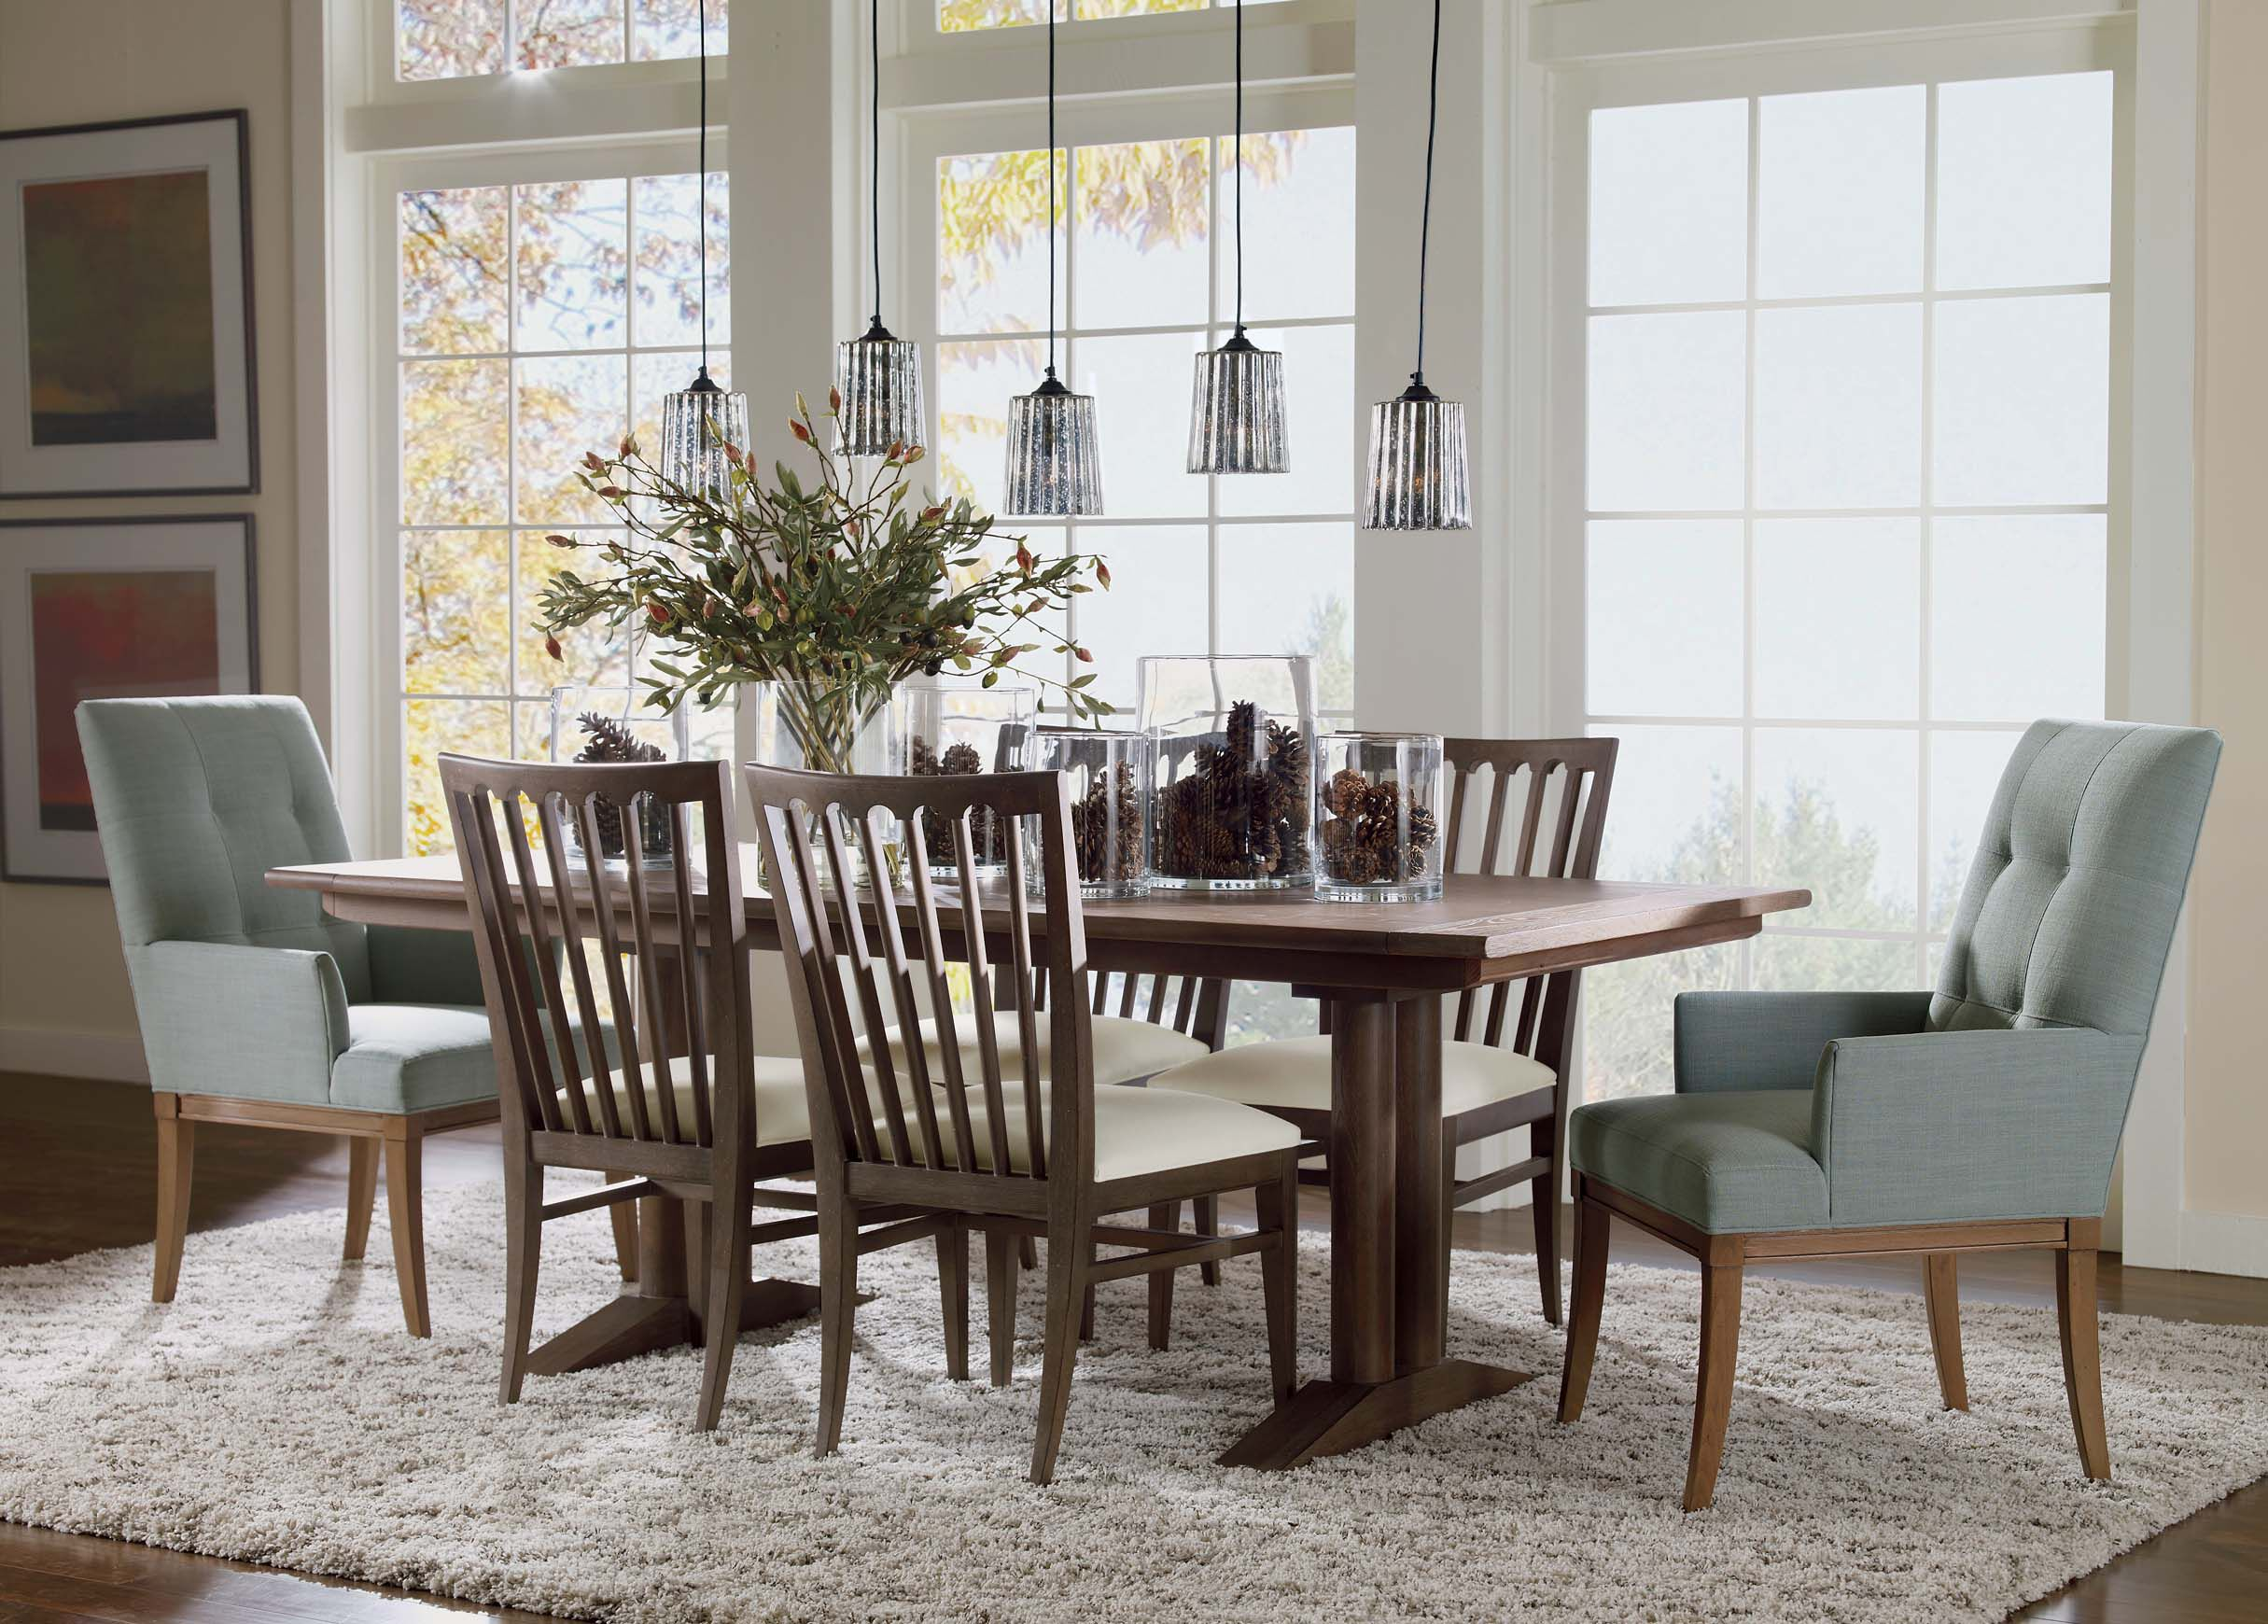 sayer extension dining table alt ethan allen